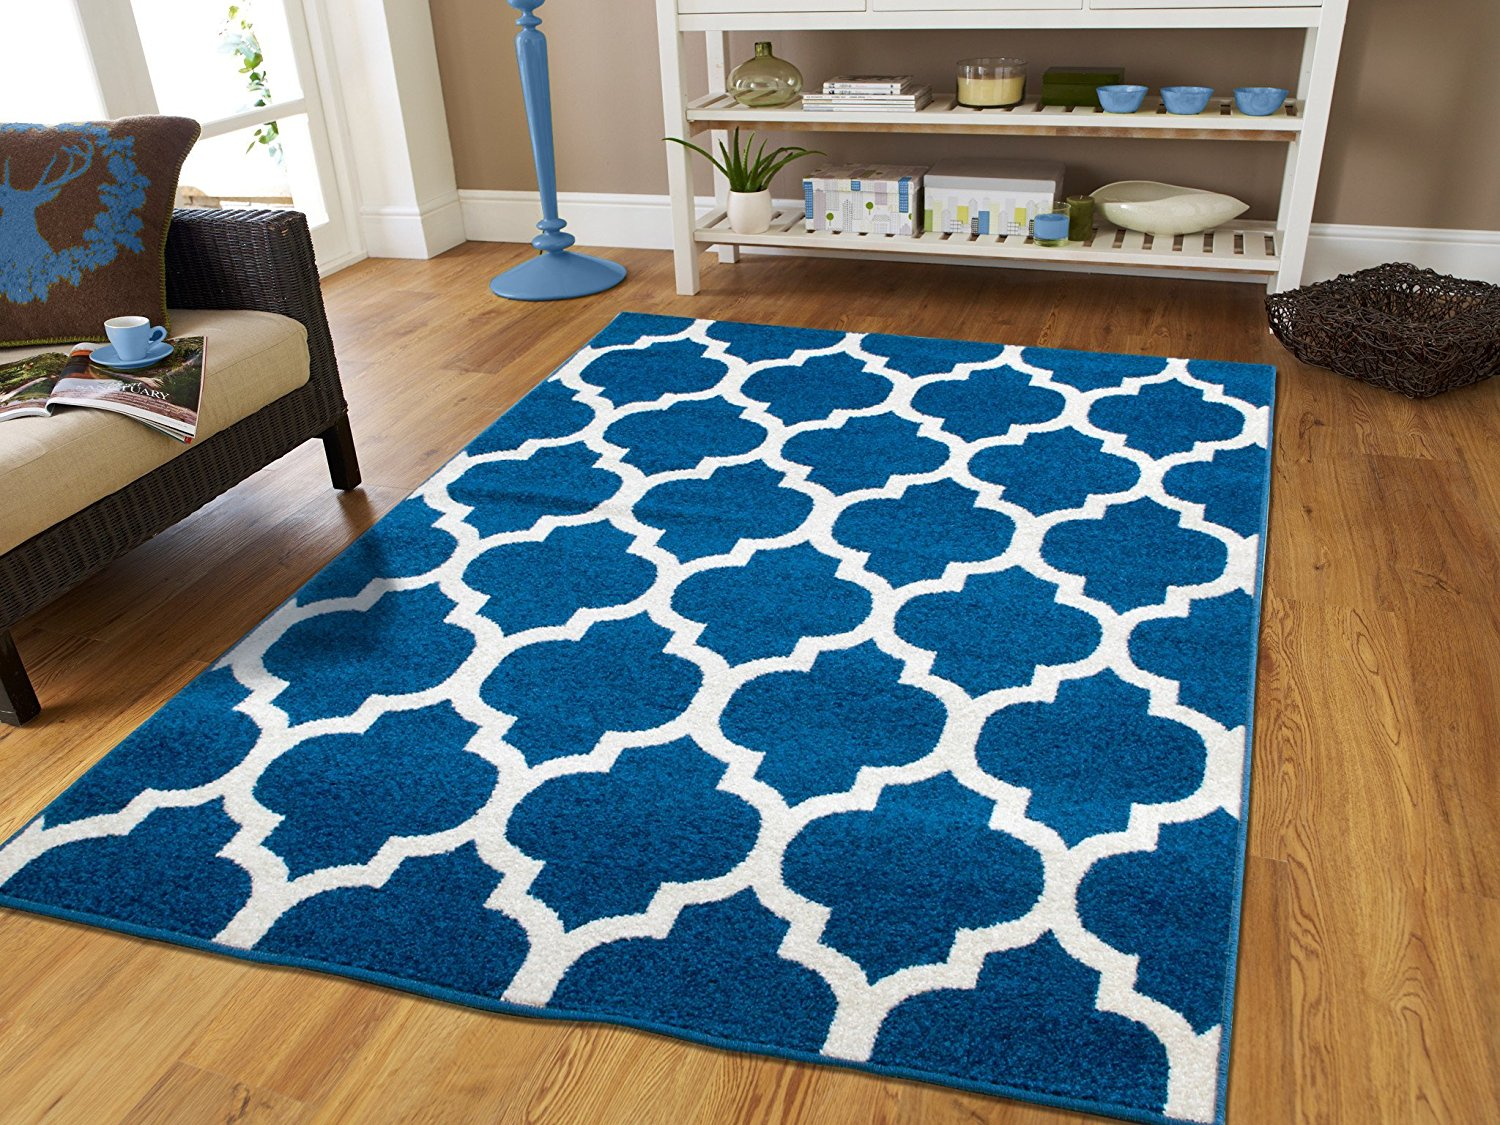 Huge Rugs For Living Room Contemporary Area Rugs 5x7 Area Rugs On Clearance 5 By 7 Rug For Living Room Blue